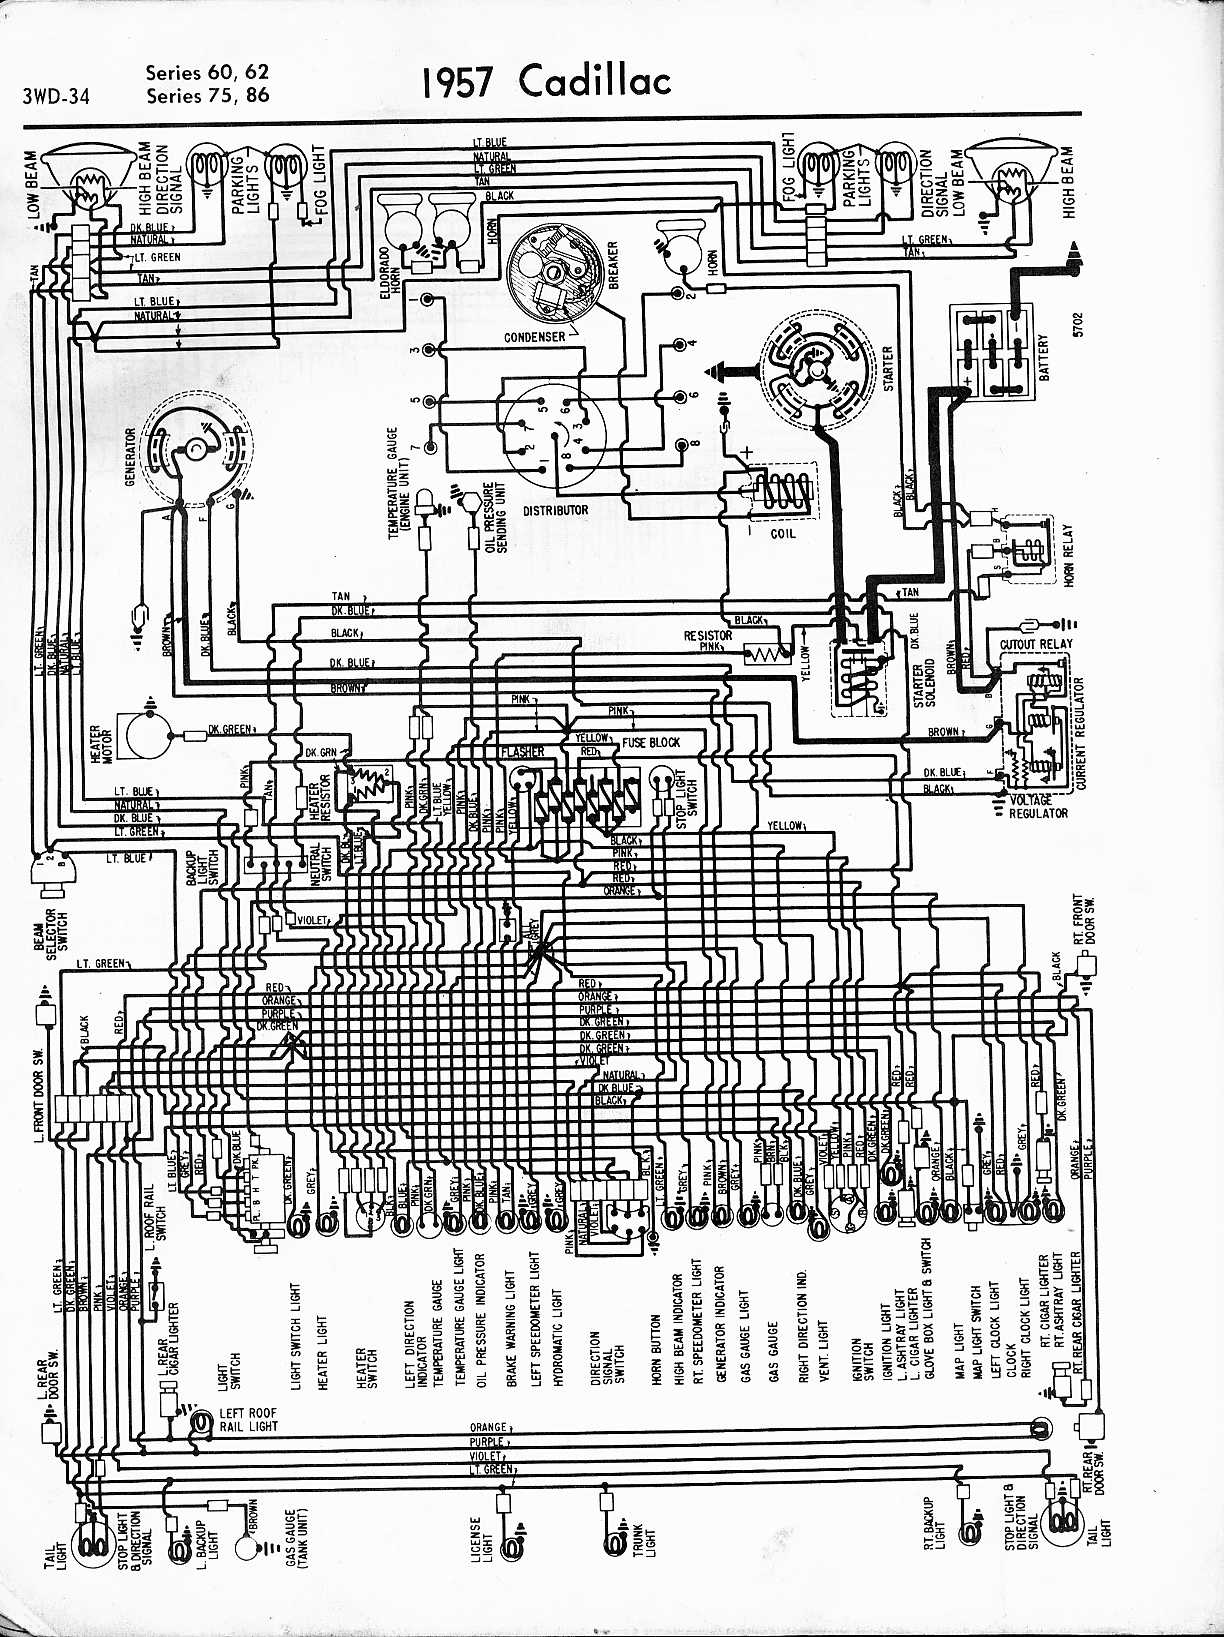 02 cadillac deville wiring diagram electrical wiring diagram house u2022 rh universalservices co 1993 Cadillac DeVille Wiring-Diagram 2002 Cadillac DeVille Diagram